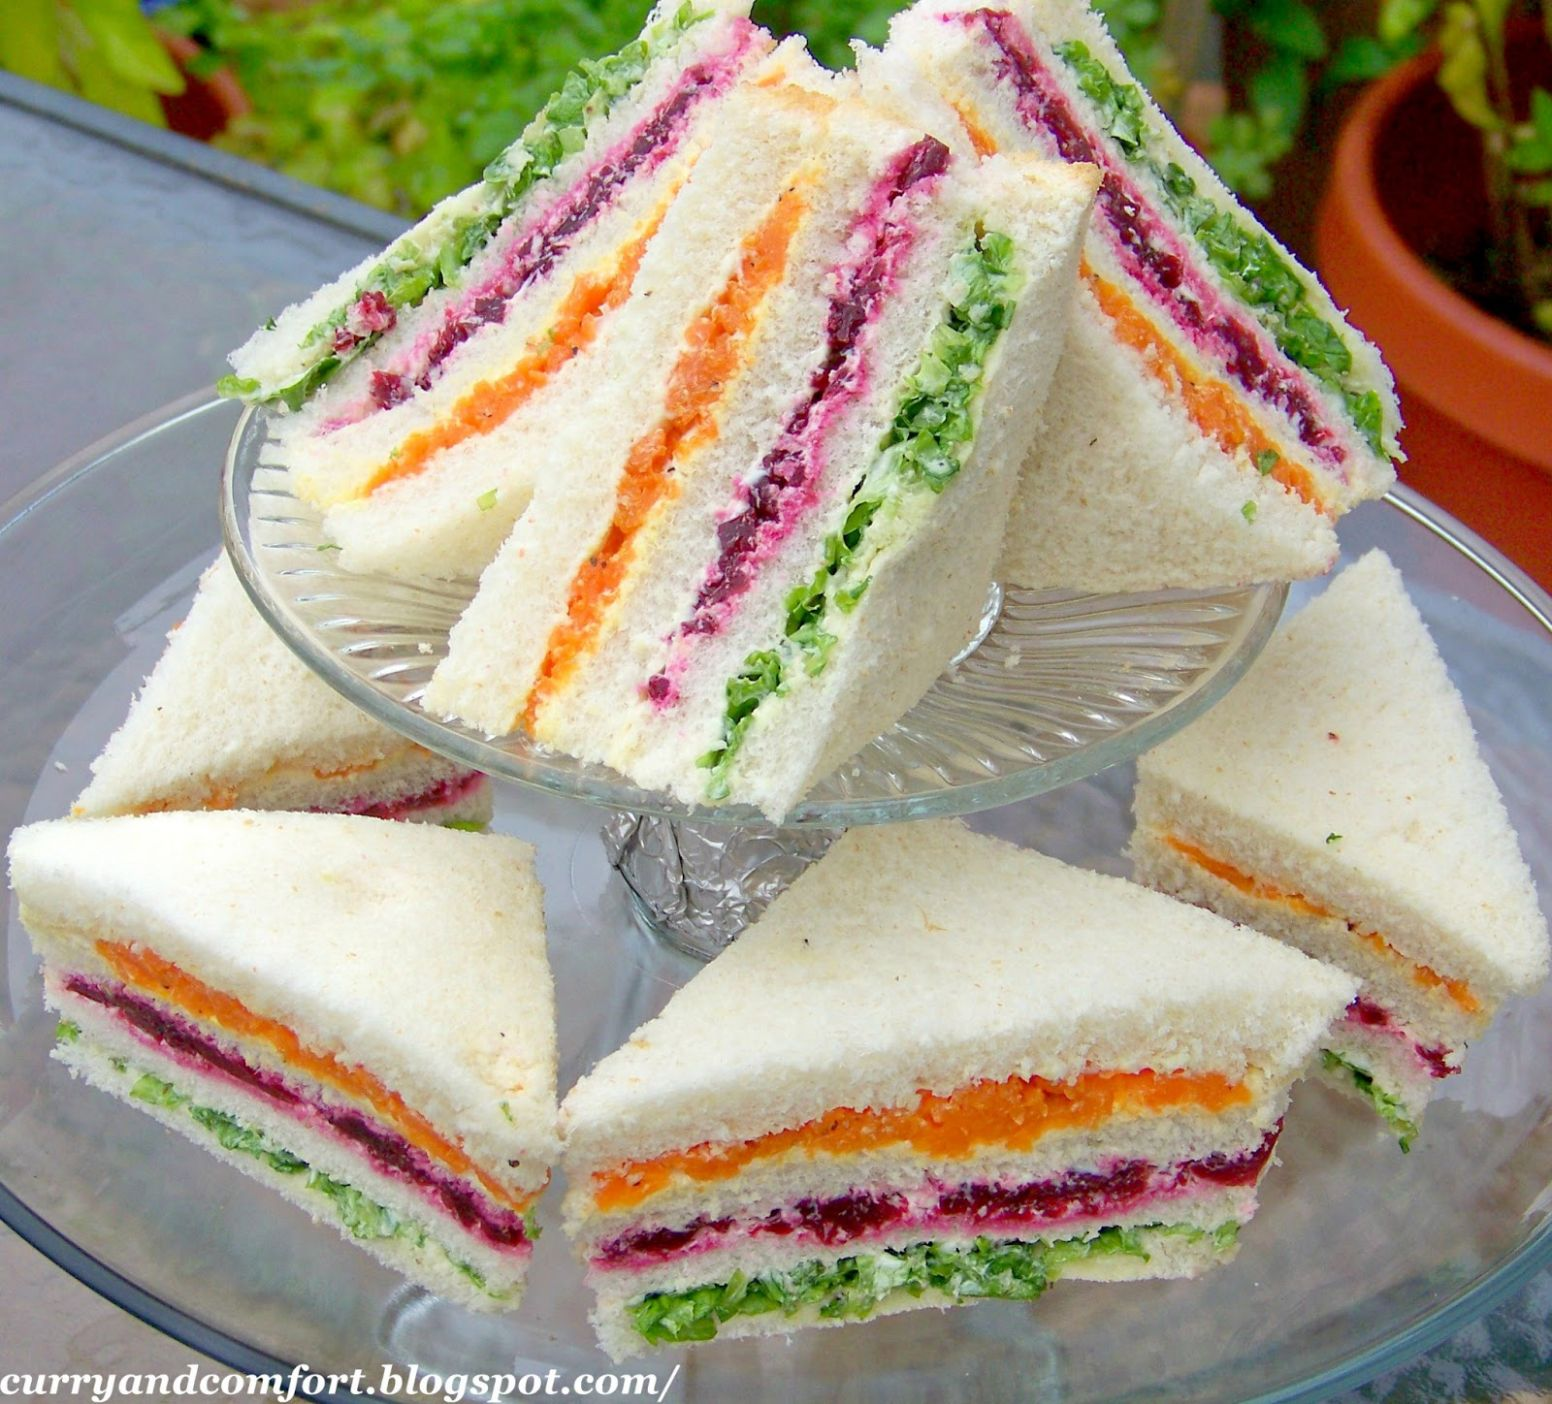 Kitchen Simmer: Sri Lankan Ribbon Sandwiches (Vegetable Tea ..